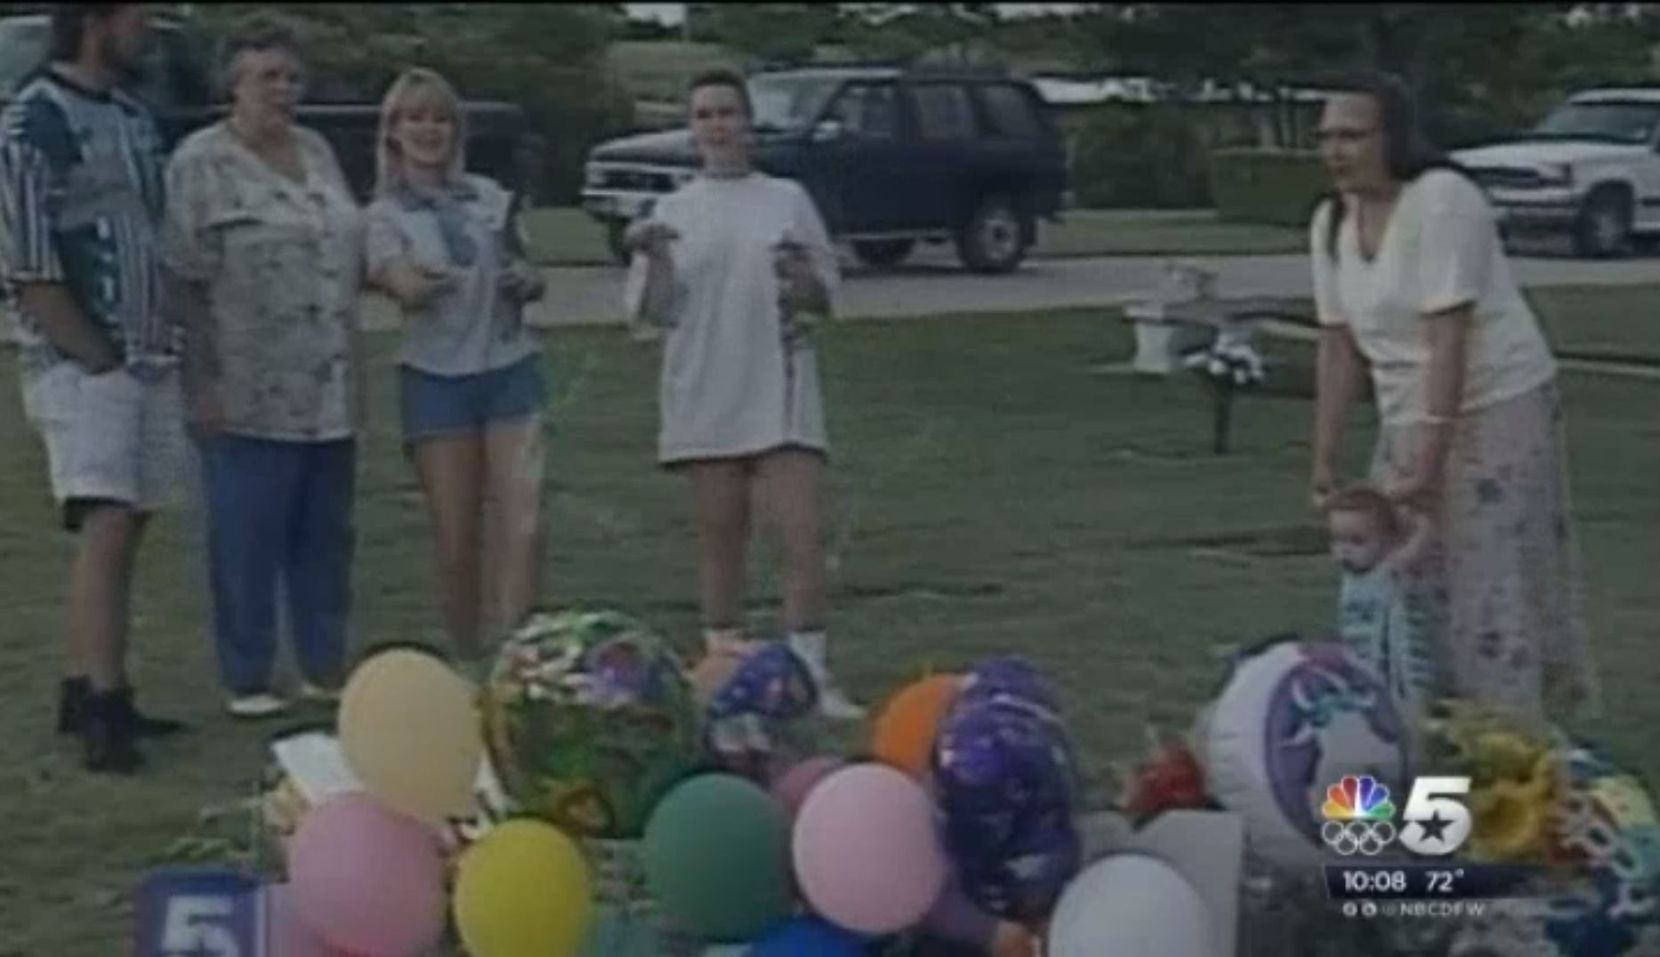 An image from a rebroadcast of the 1996 video NBC5 captured of Darlie Routier spraying Silly String on her sons' graves.